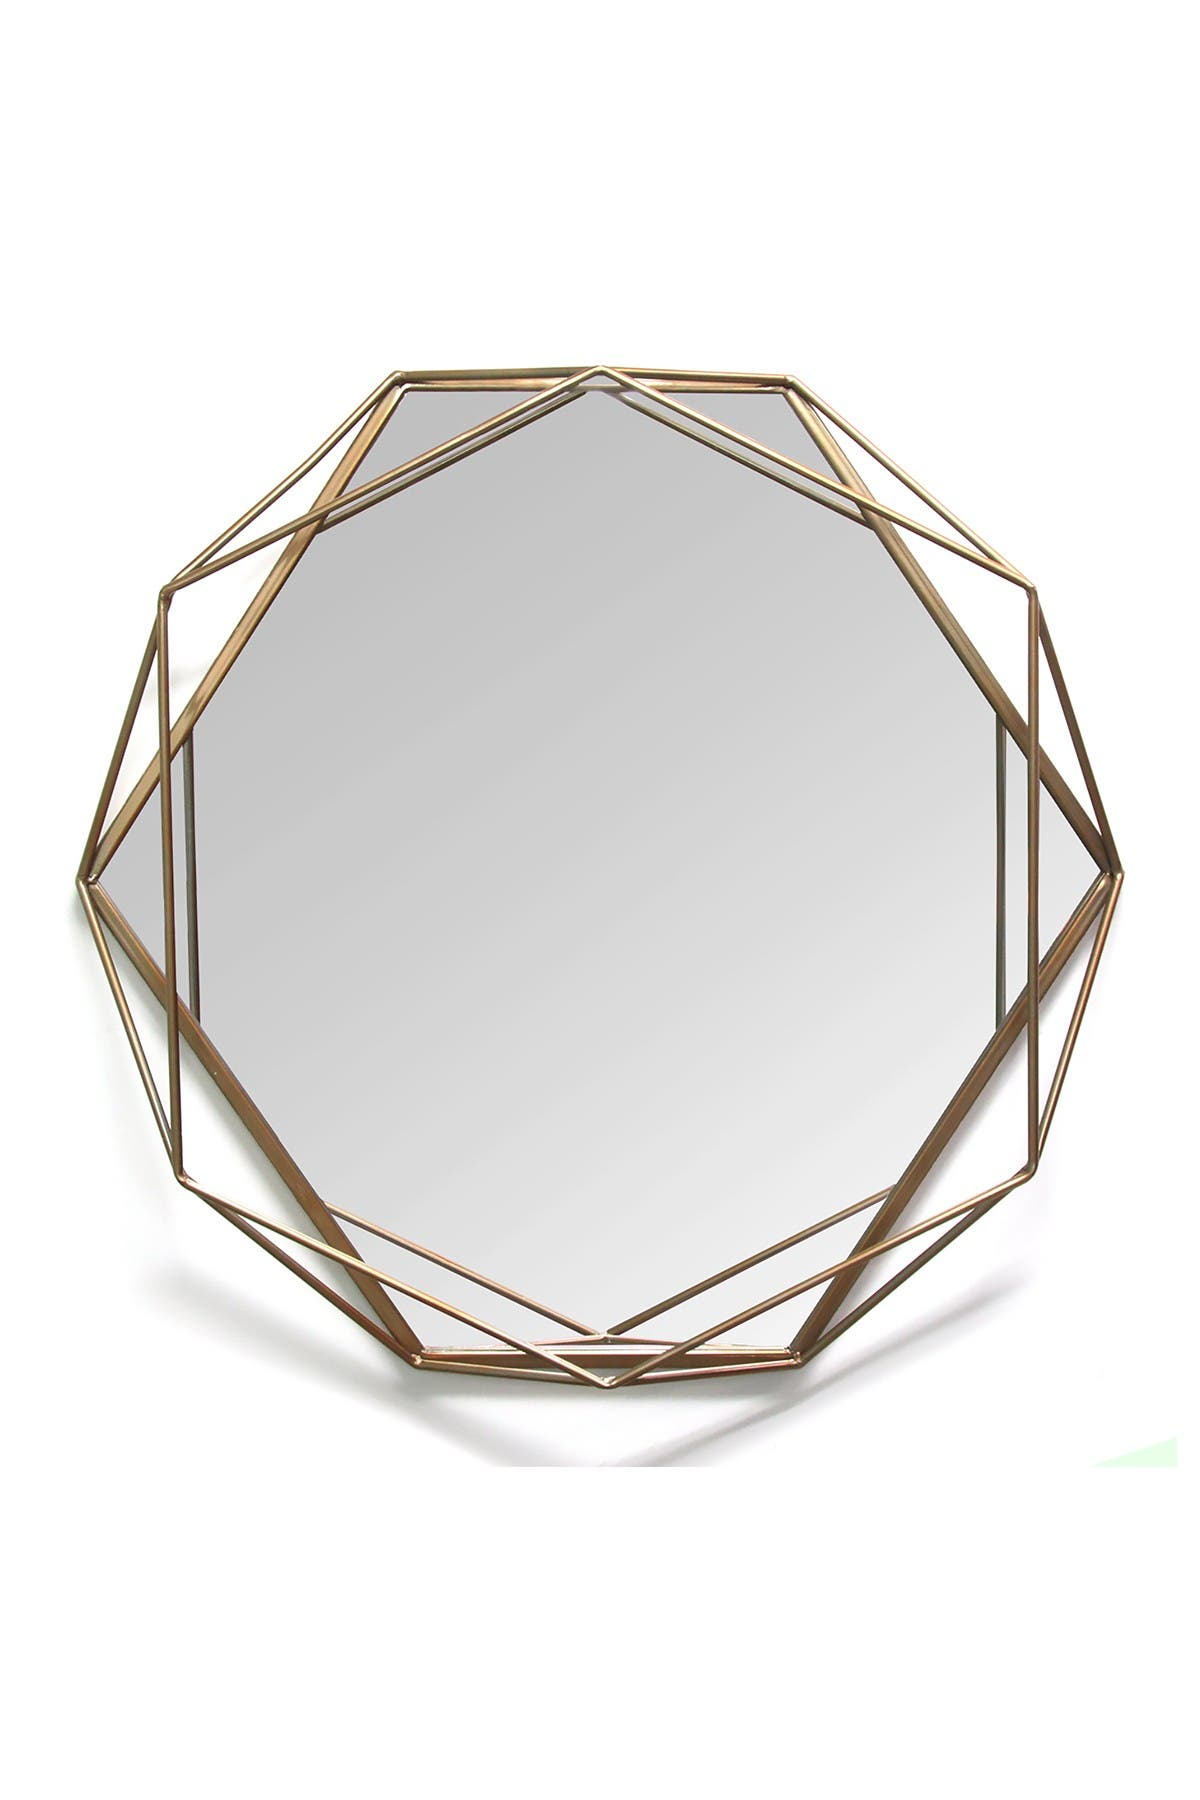 Stratton Home Gold Chloe Wall Mirror at Nordstrom Rack